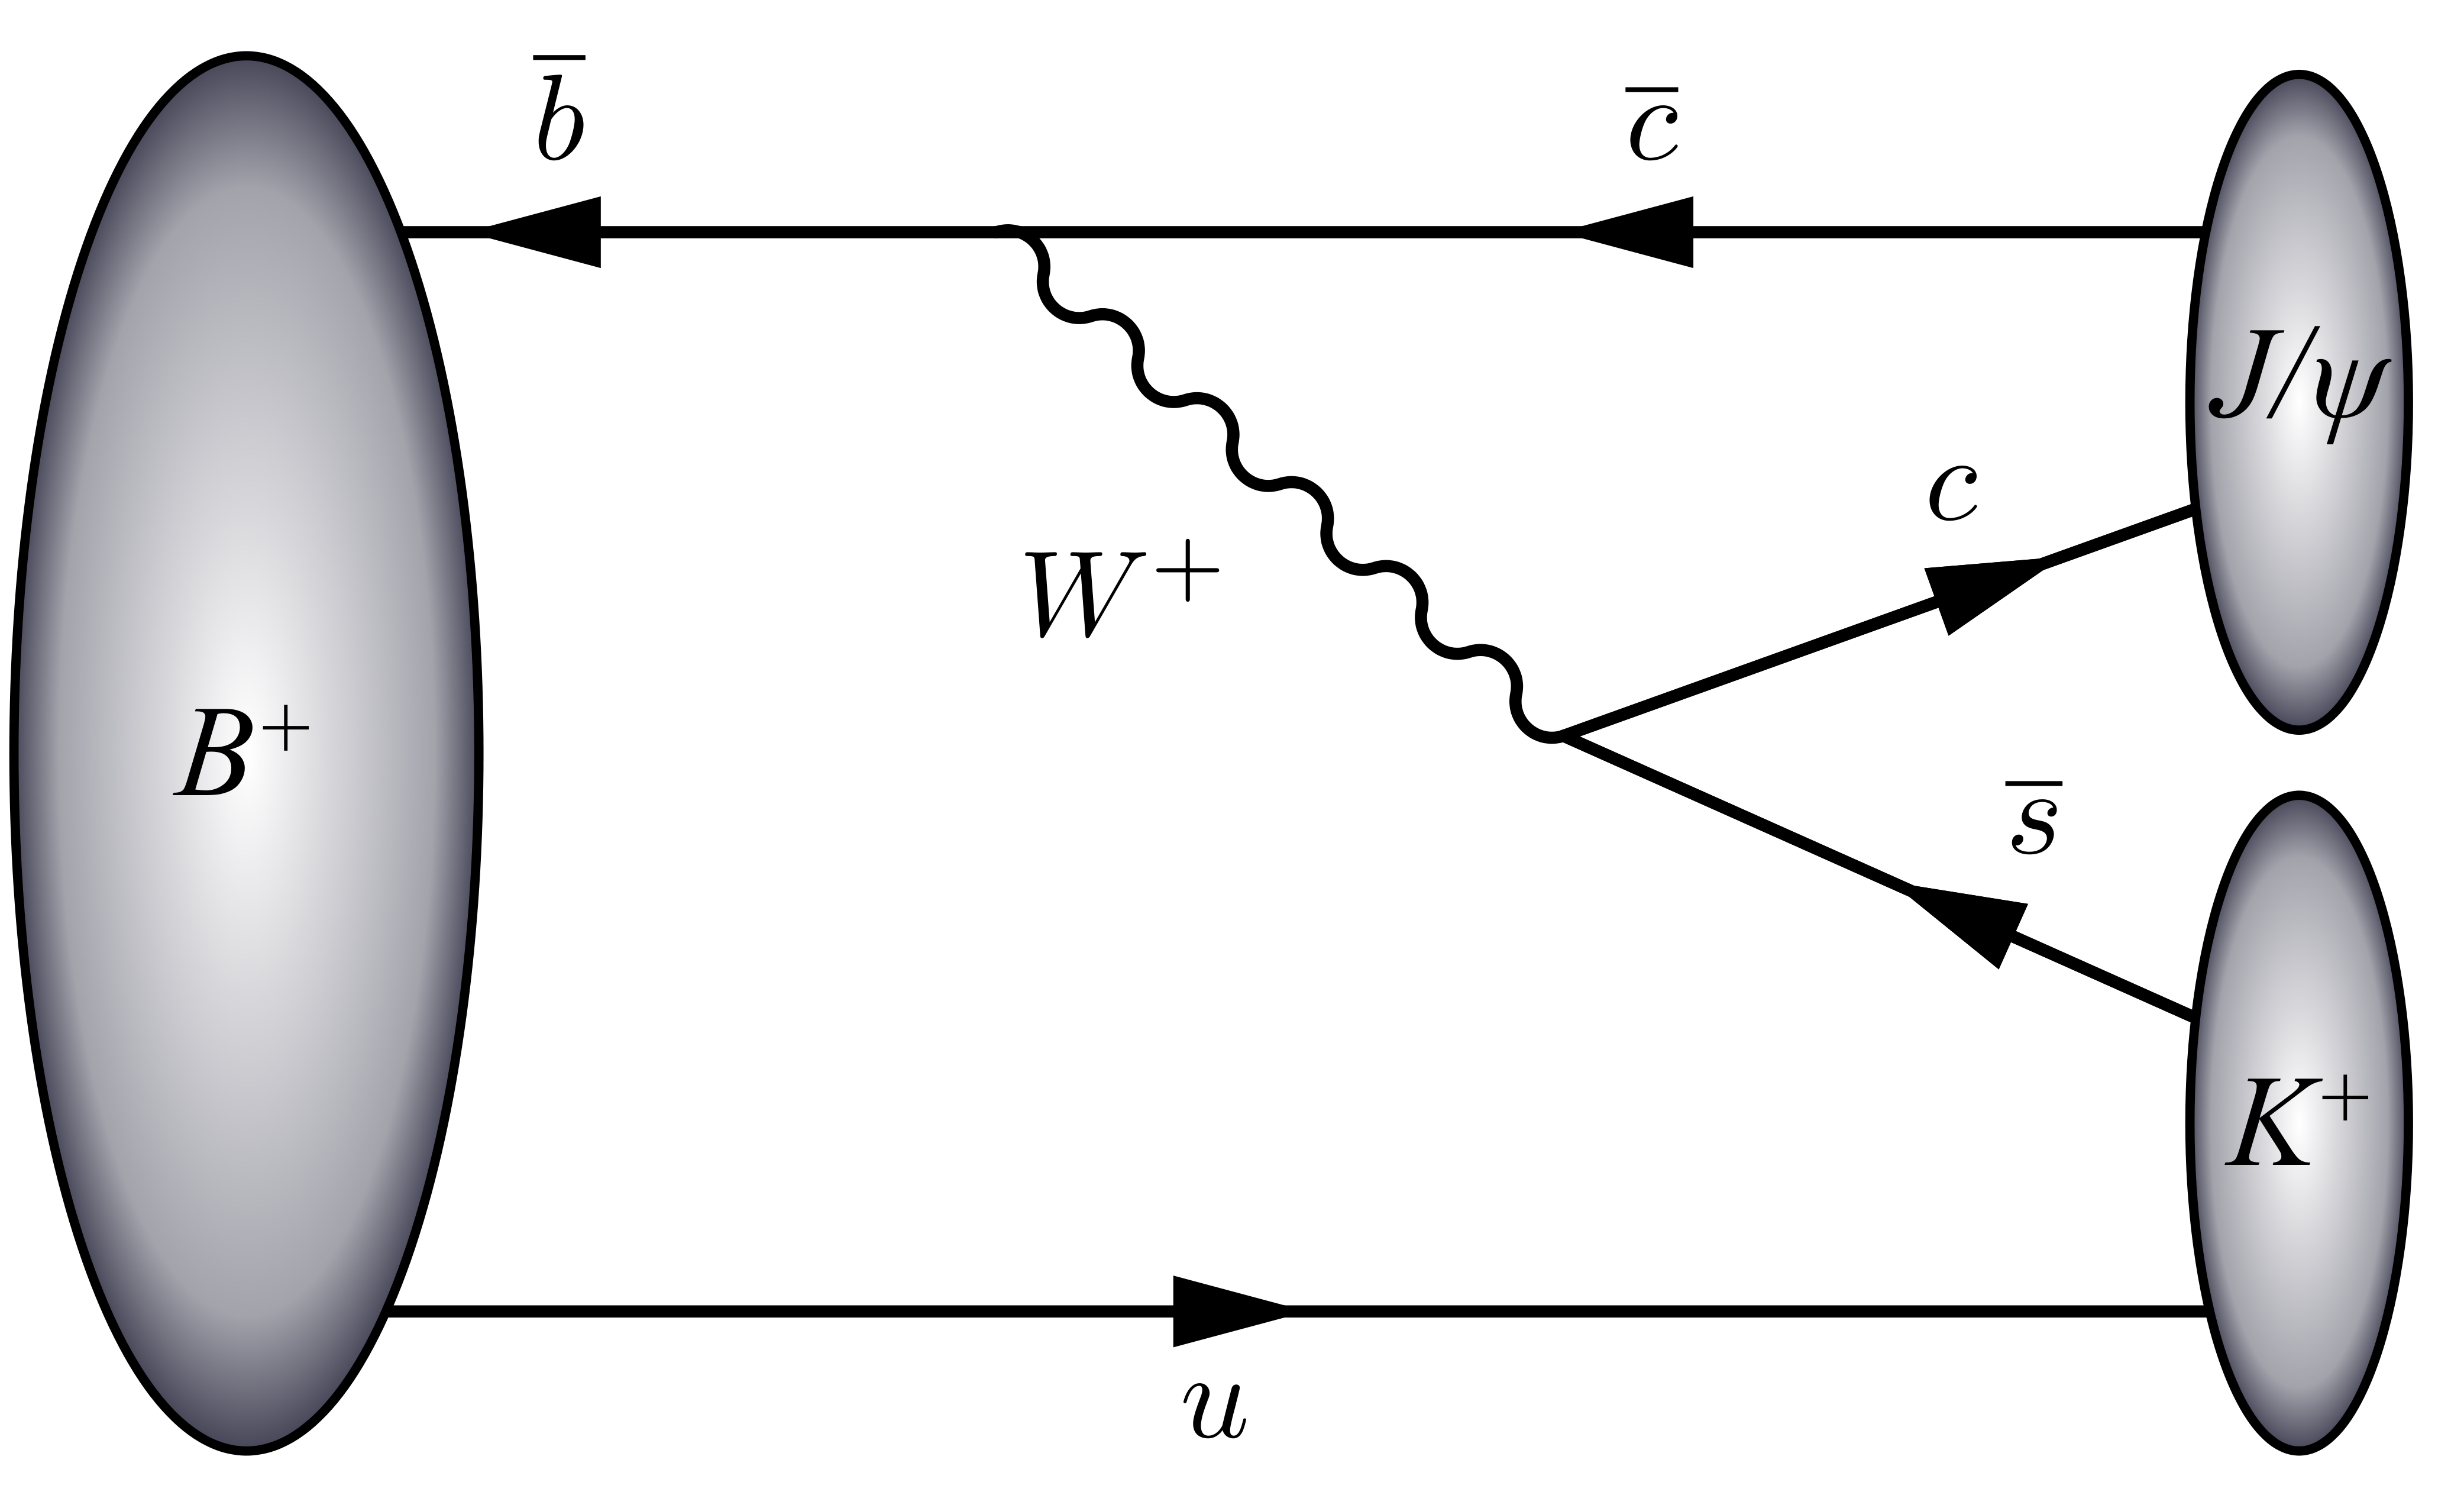 Chapter 1: Theoretical background 31 Figure 1.6: Leading-order diagram for the decay of a B + meson (u b) to J/ψ (c c) and K + (u s). B meson Quark content Mass (MeV) Mean lifetime (ps) B + bu 5279.